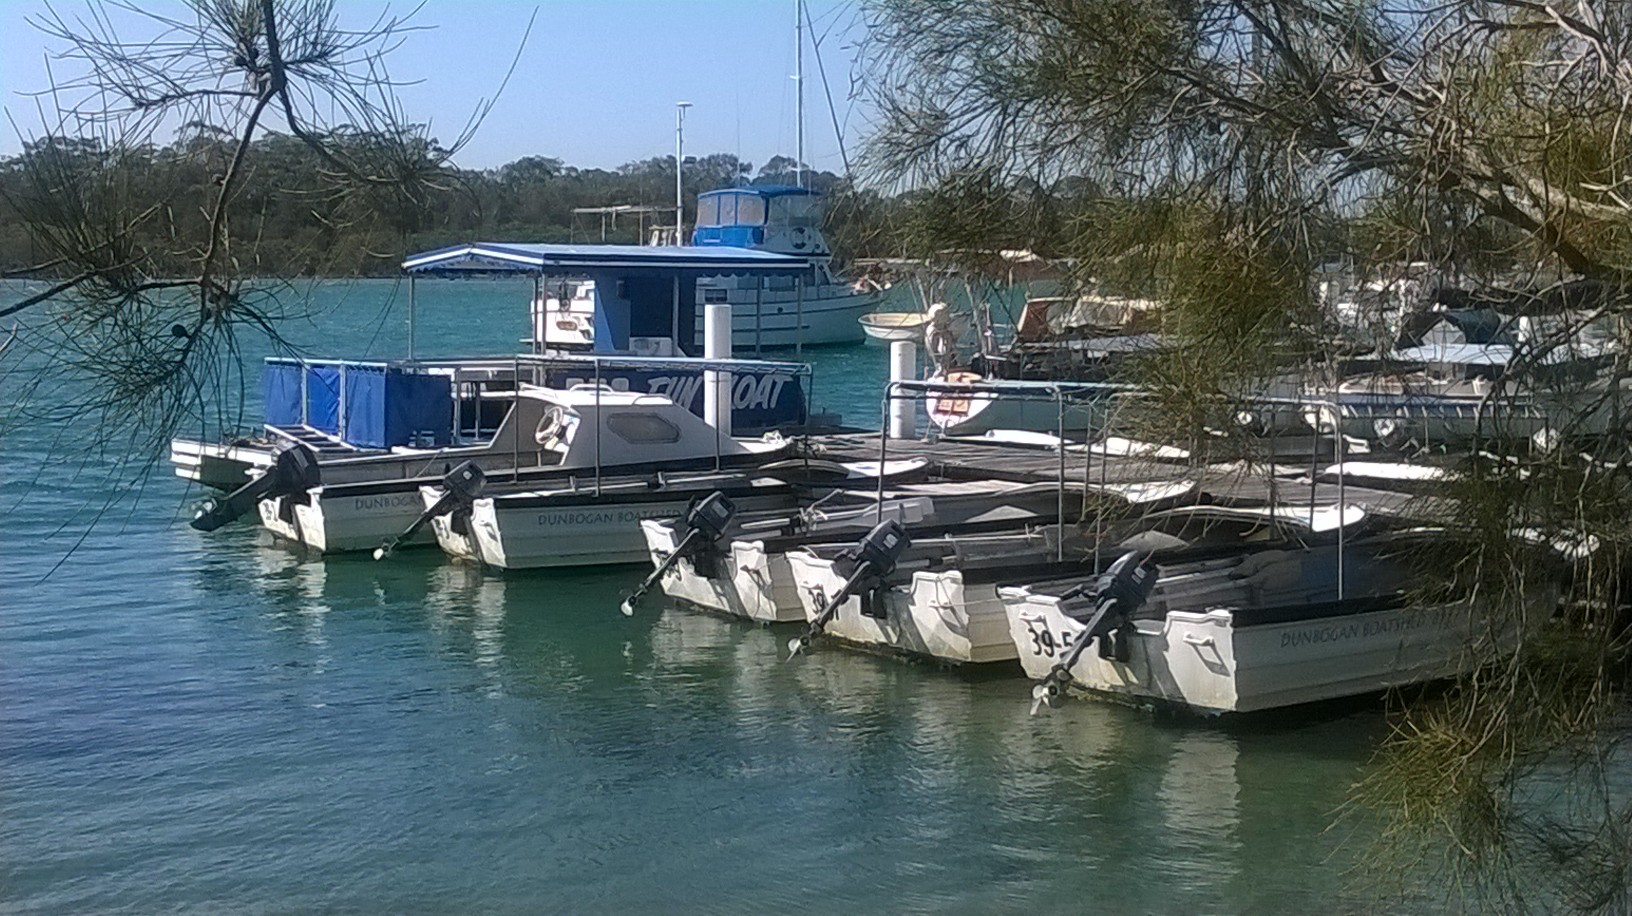 Hire boats Oct 2015